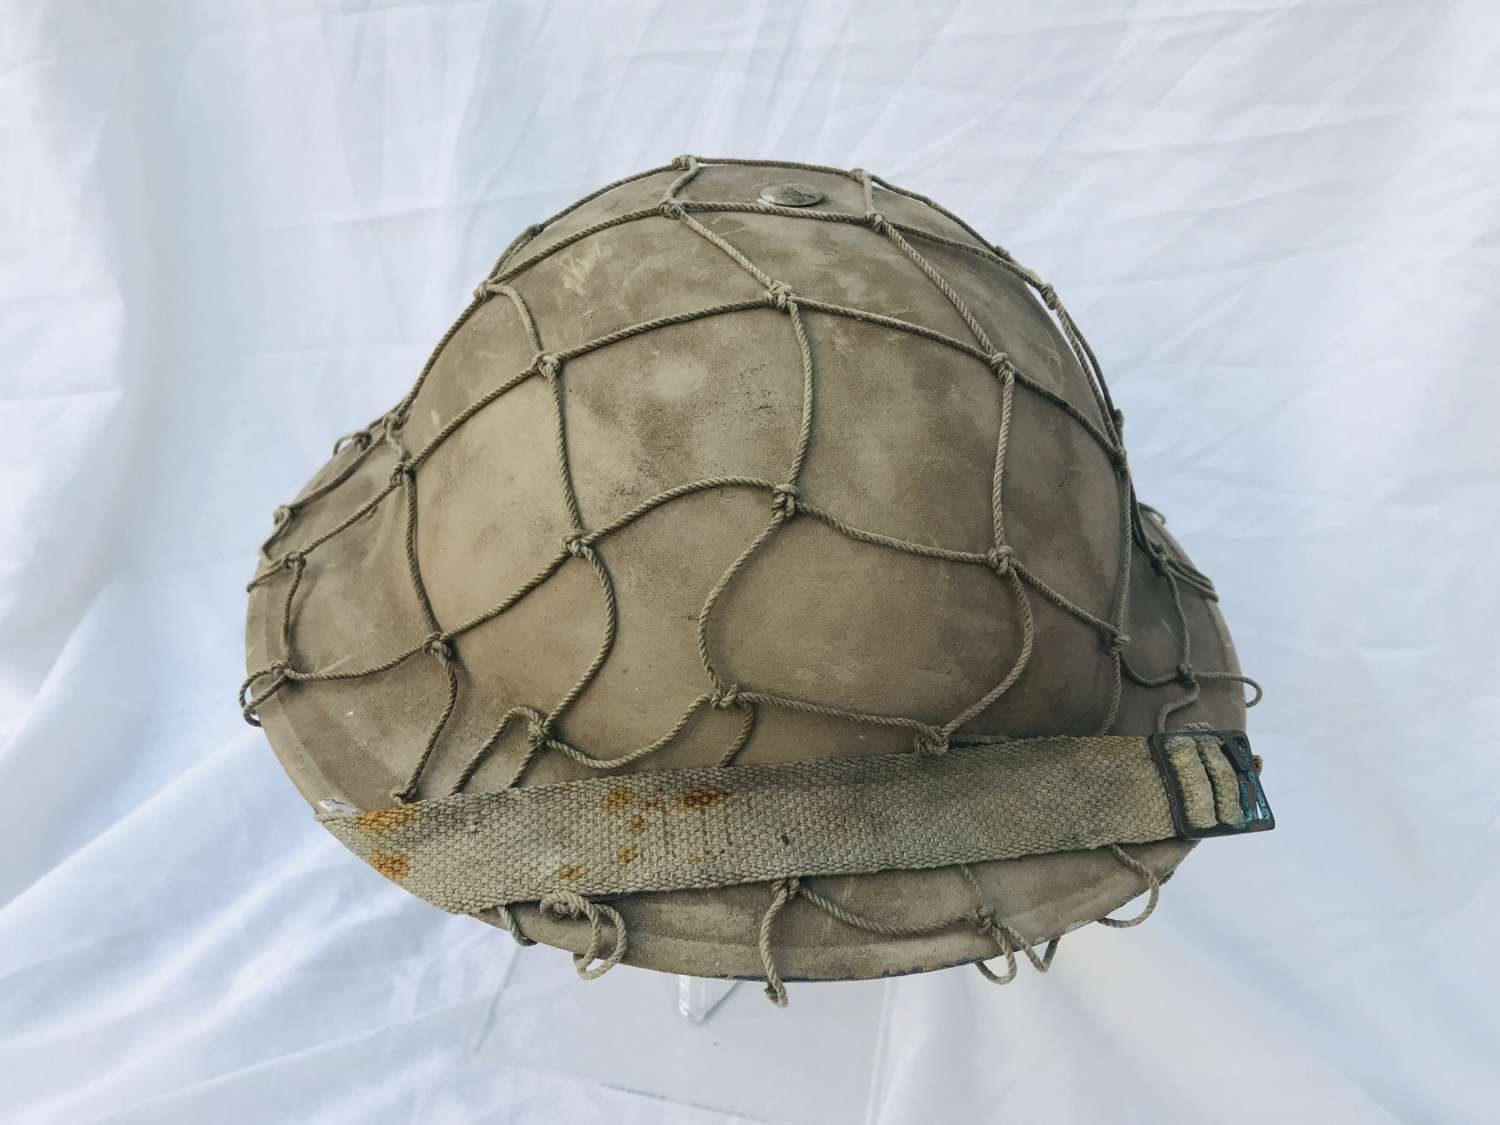 1939 Dated British helmet refurbished for re-enactment